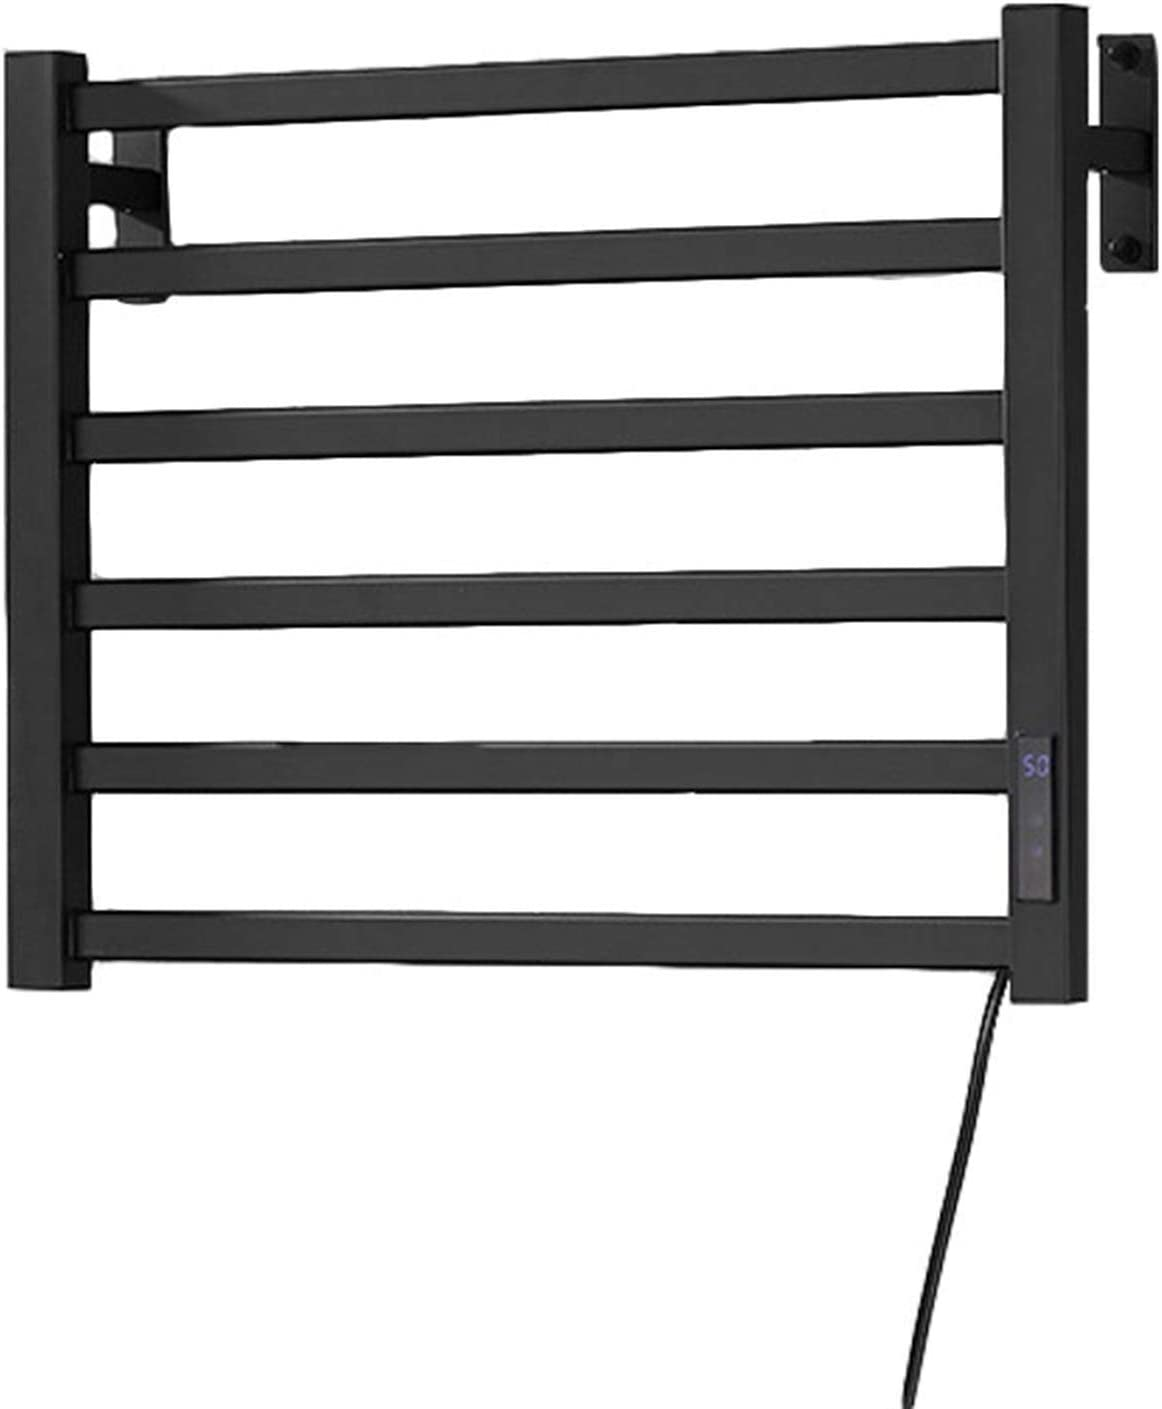 YUDIZWS Max 66% OFF Electric Towel Rack Dryer Thermostat 5% OFF Wall-Moun Built-in